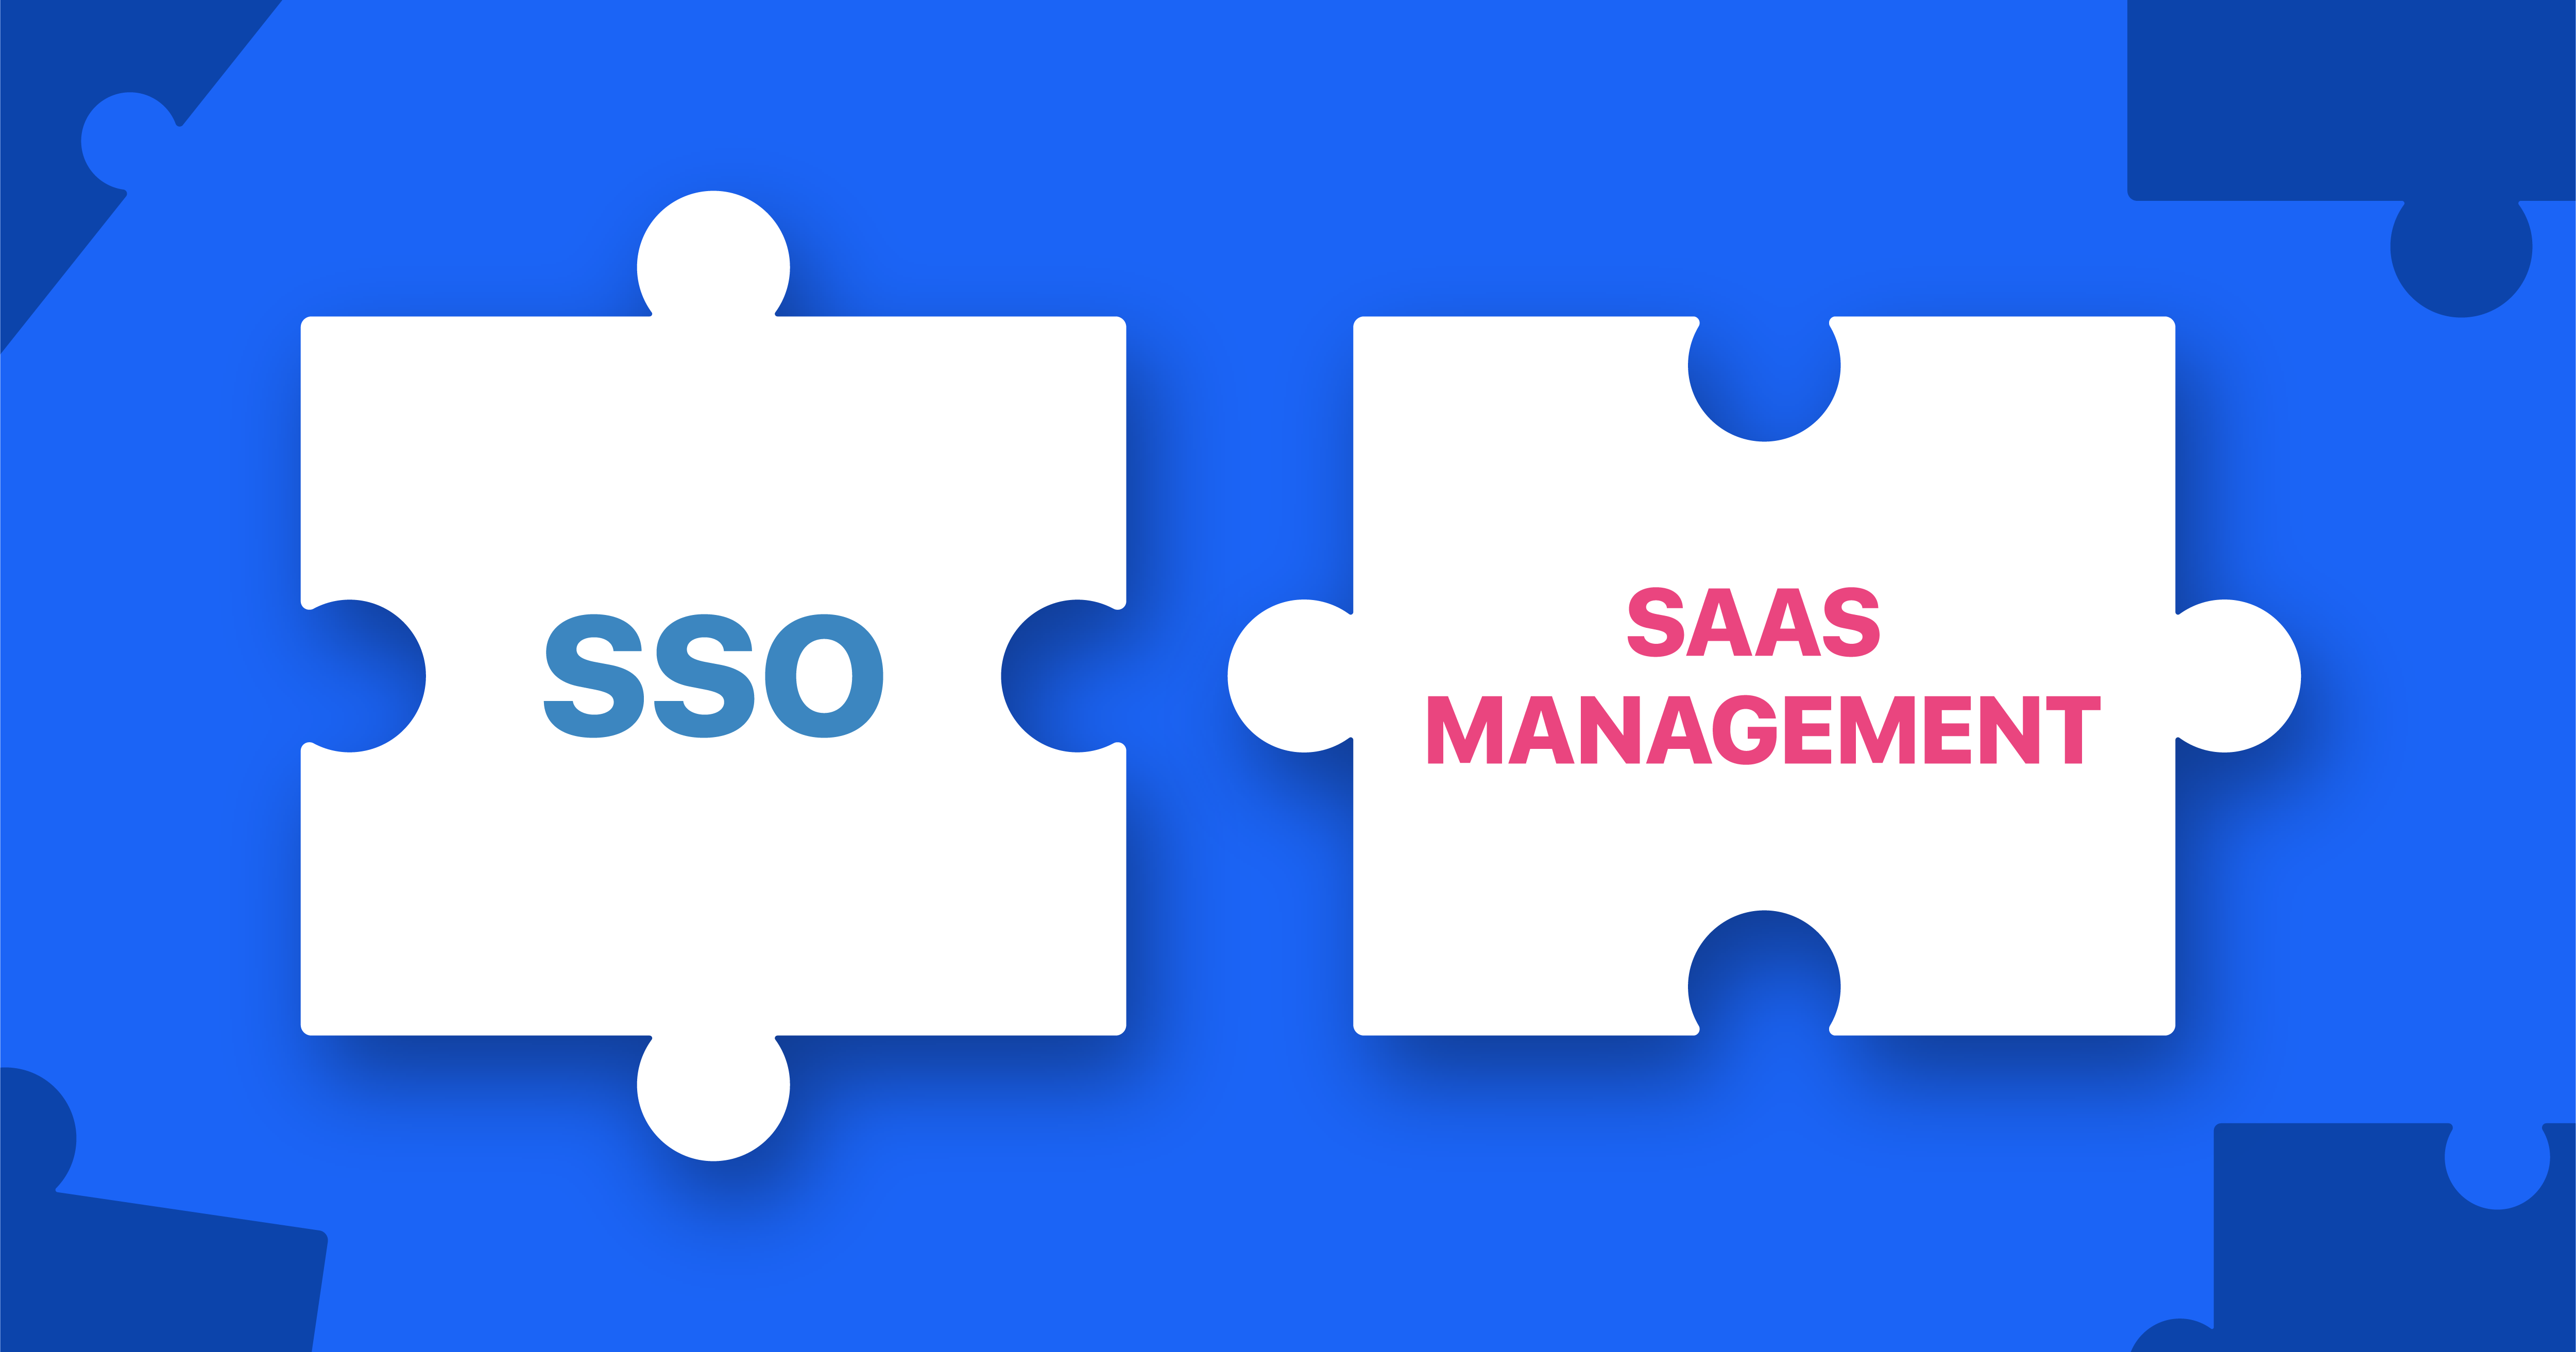 SSO and Saas Management